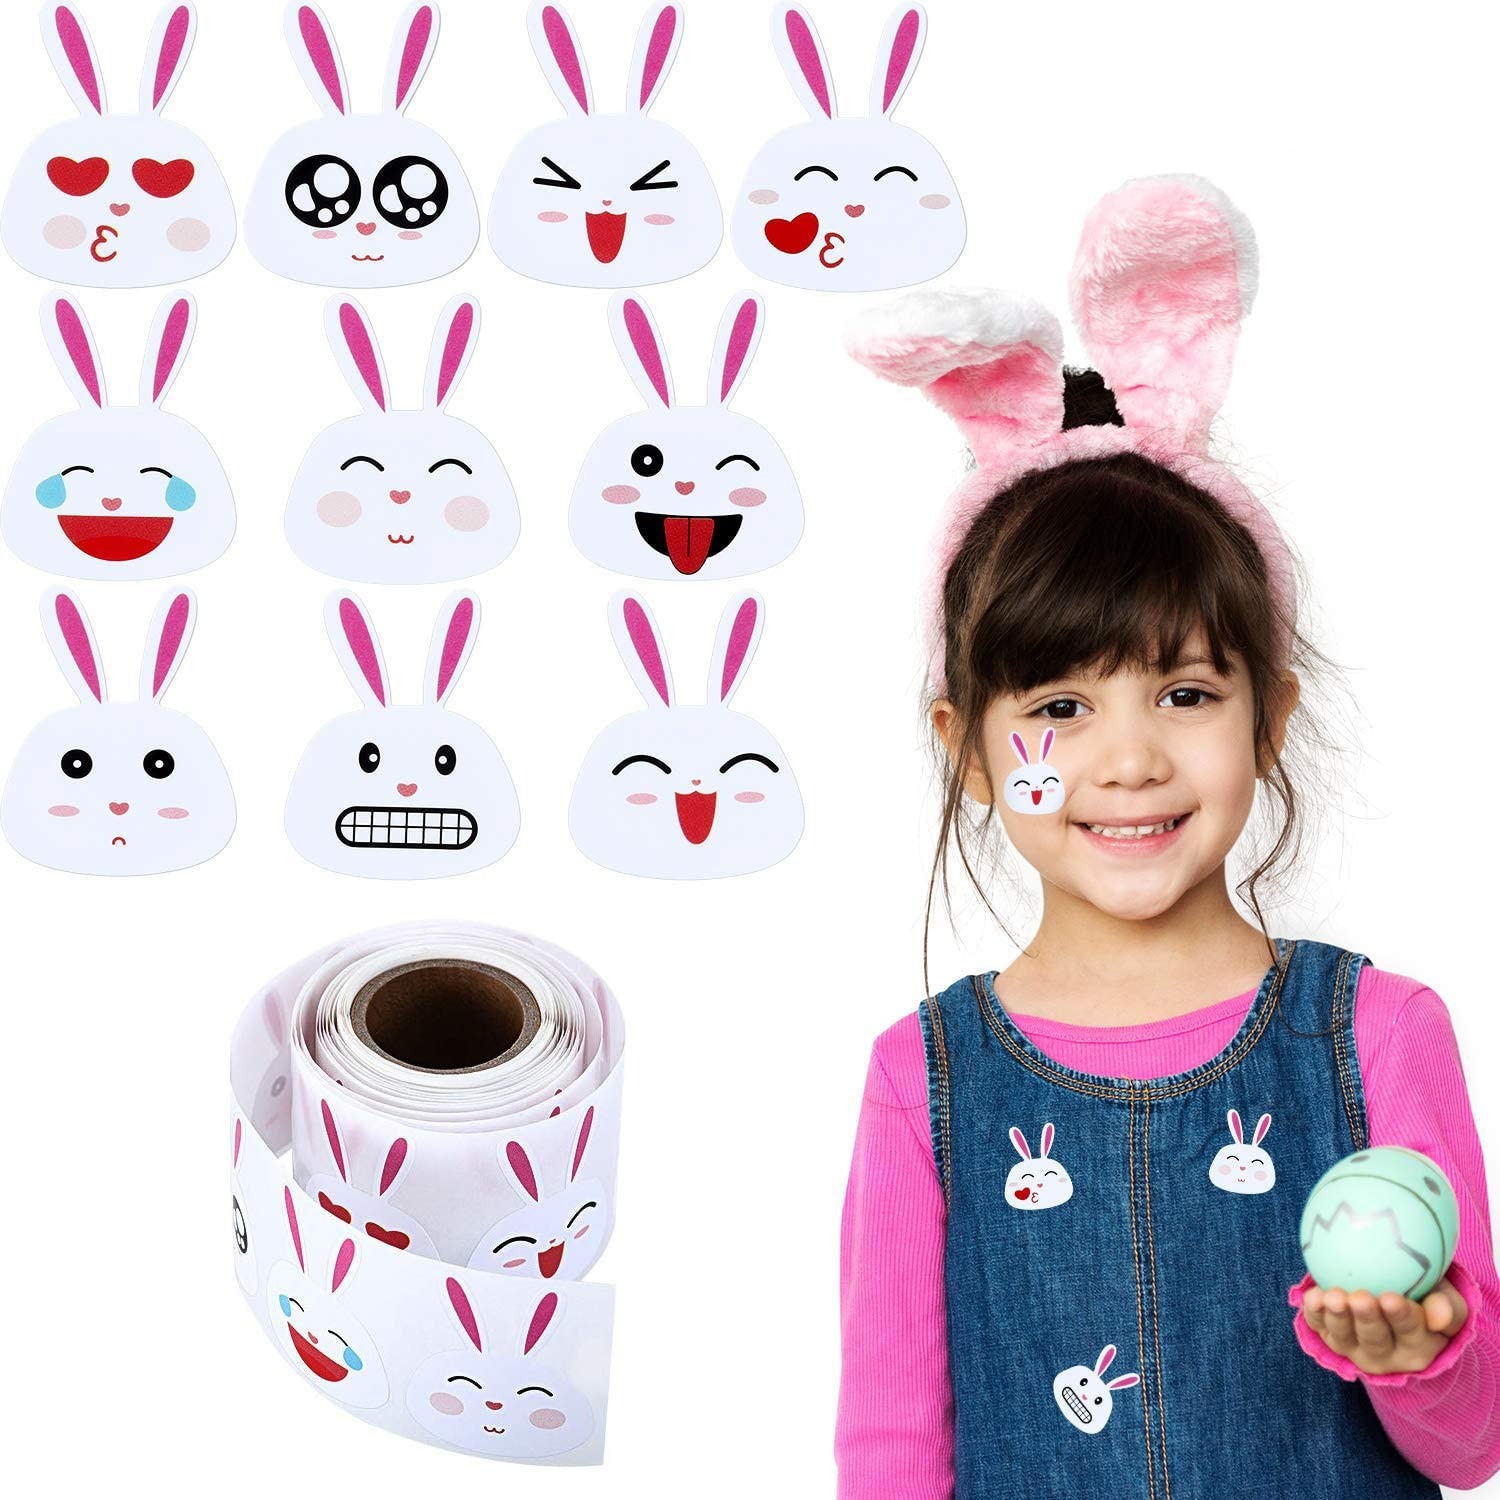 Easter Stickers 1.5 Inch Permanent Adhesive Labels Hcode 200 Pieces Easter Bunny Stickers Emoji Bunny Face Stickers 200 pcs